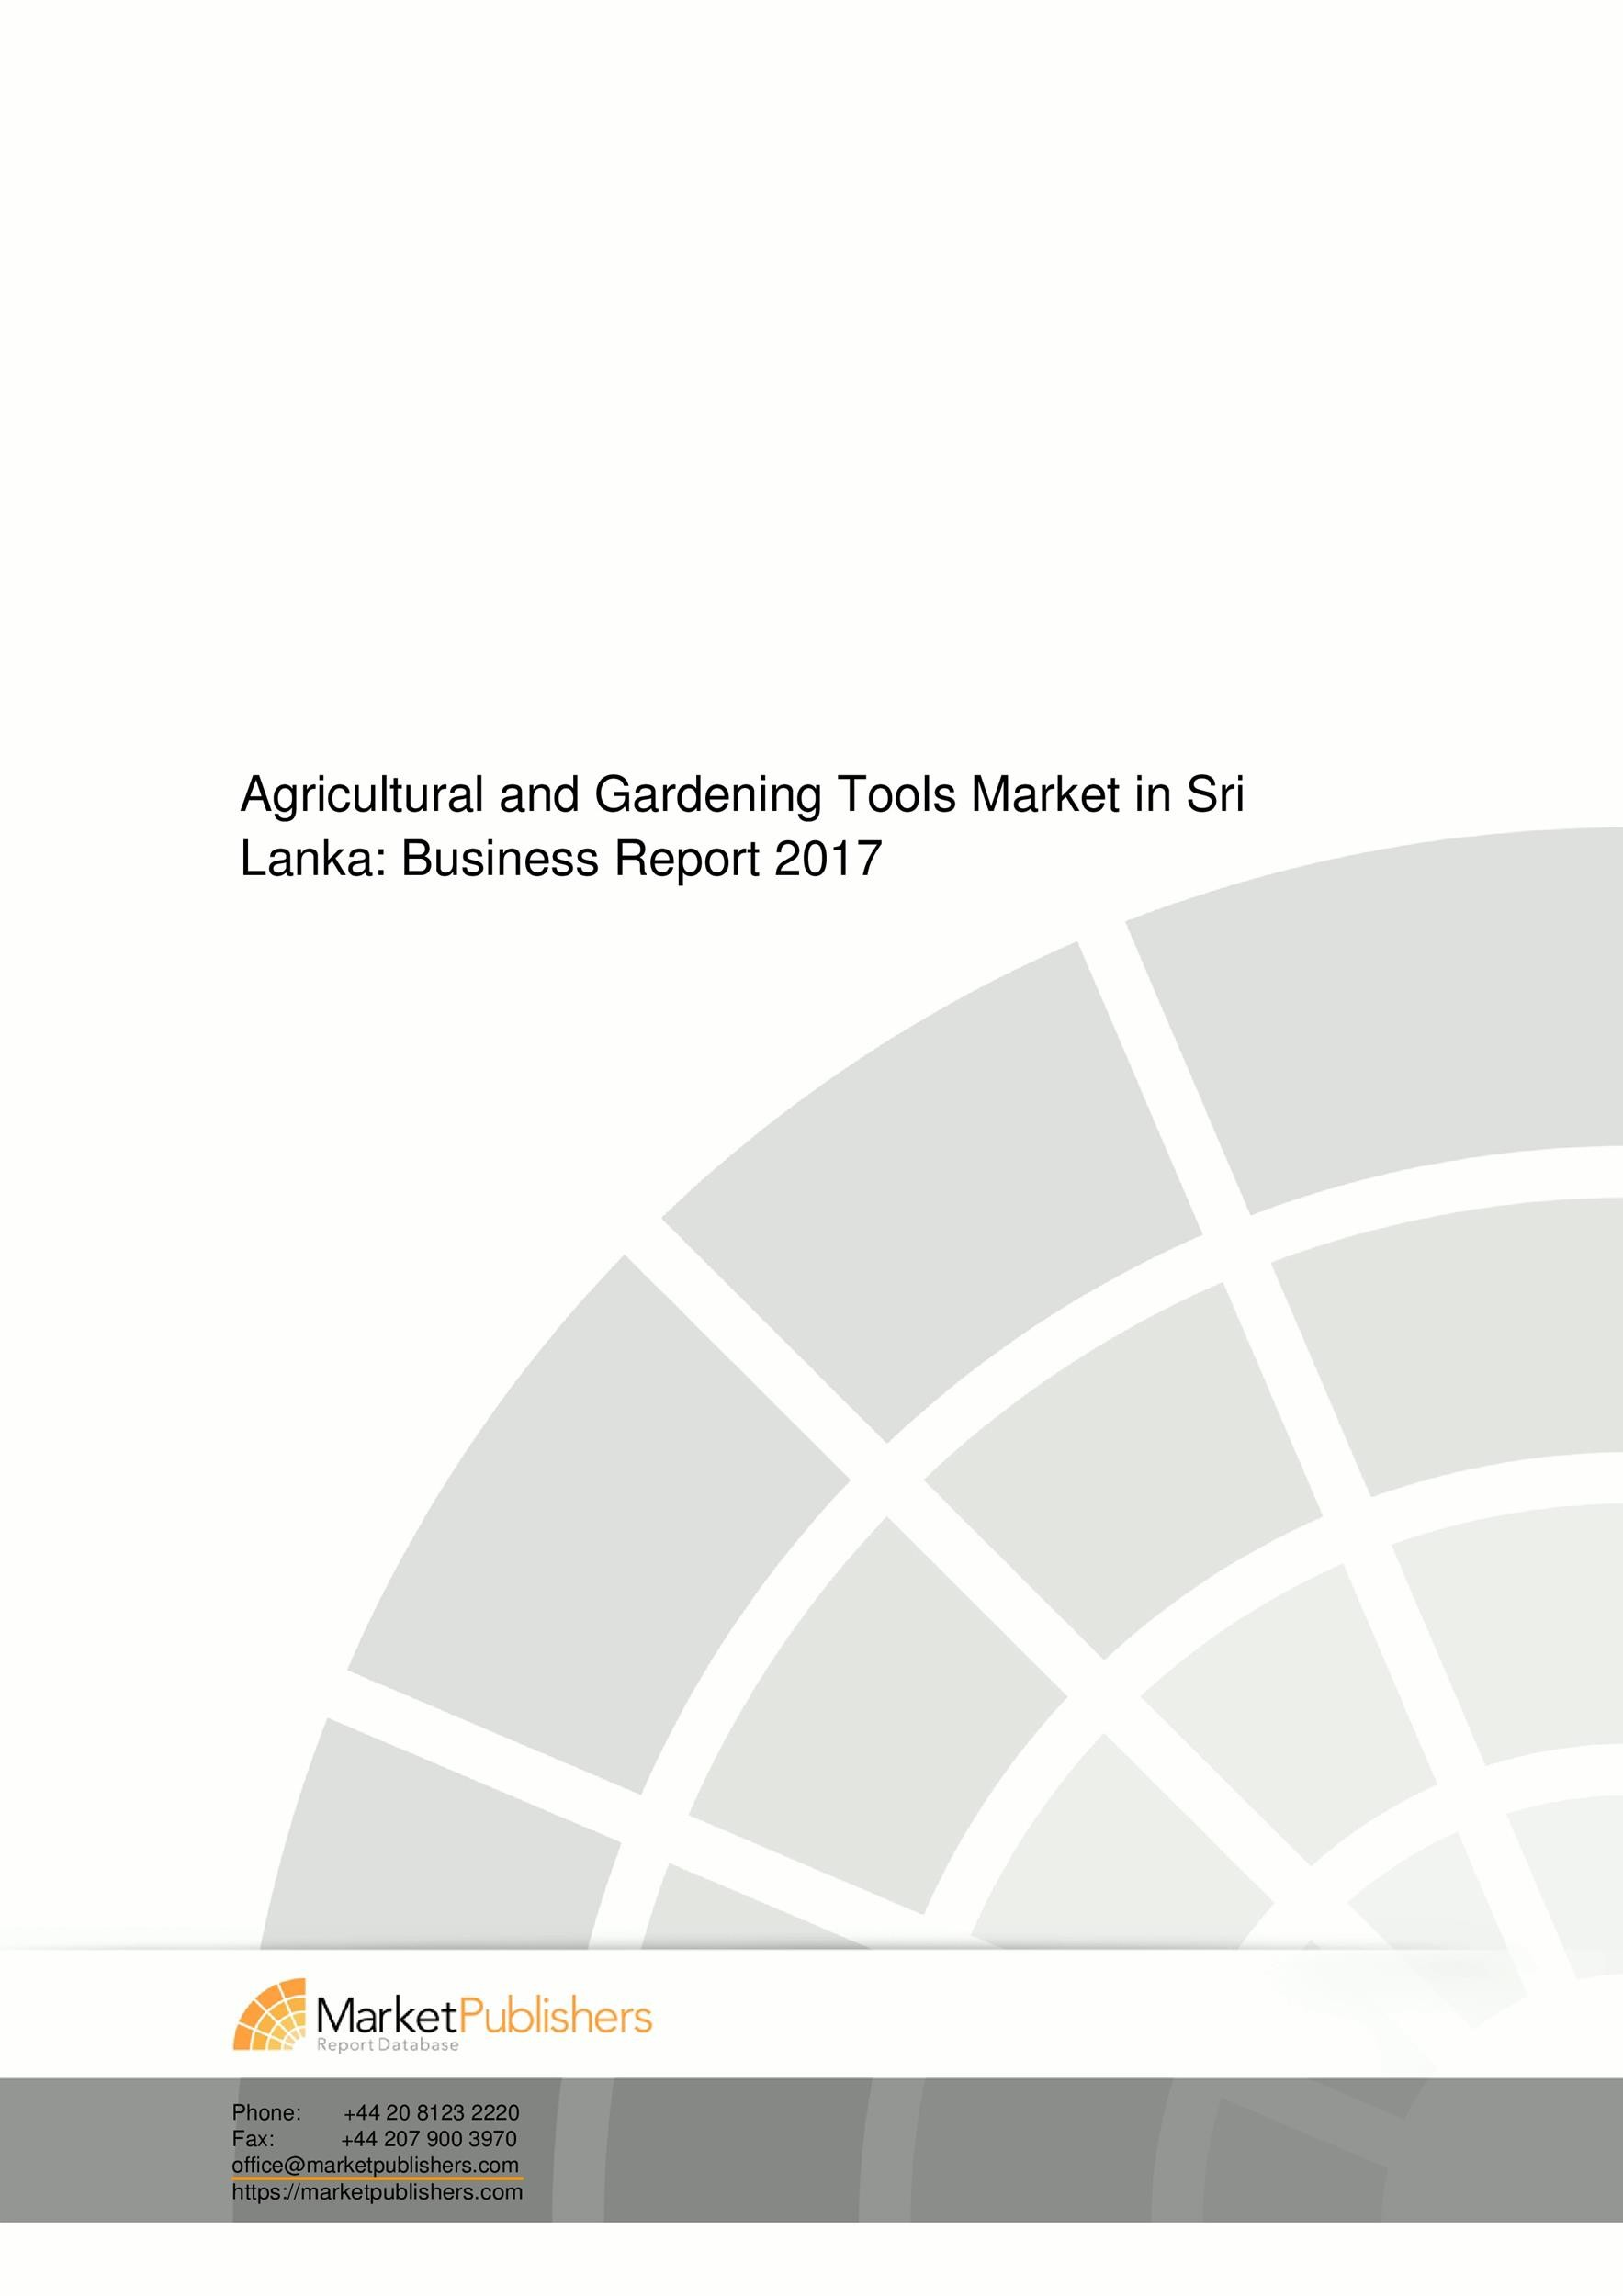 Free business report template 11